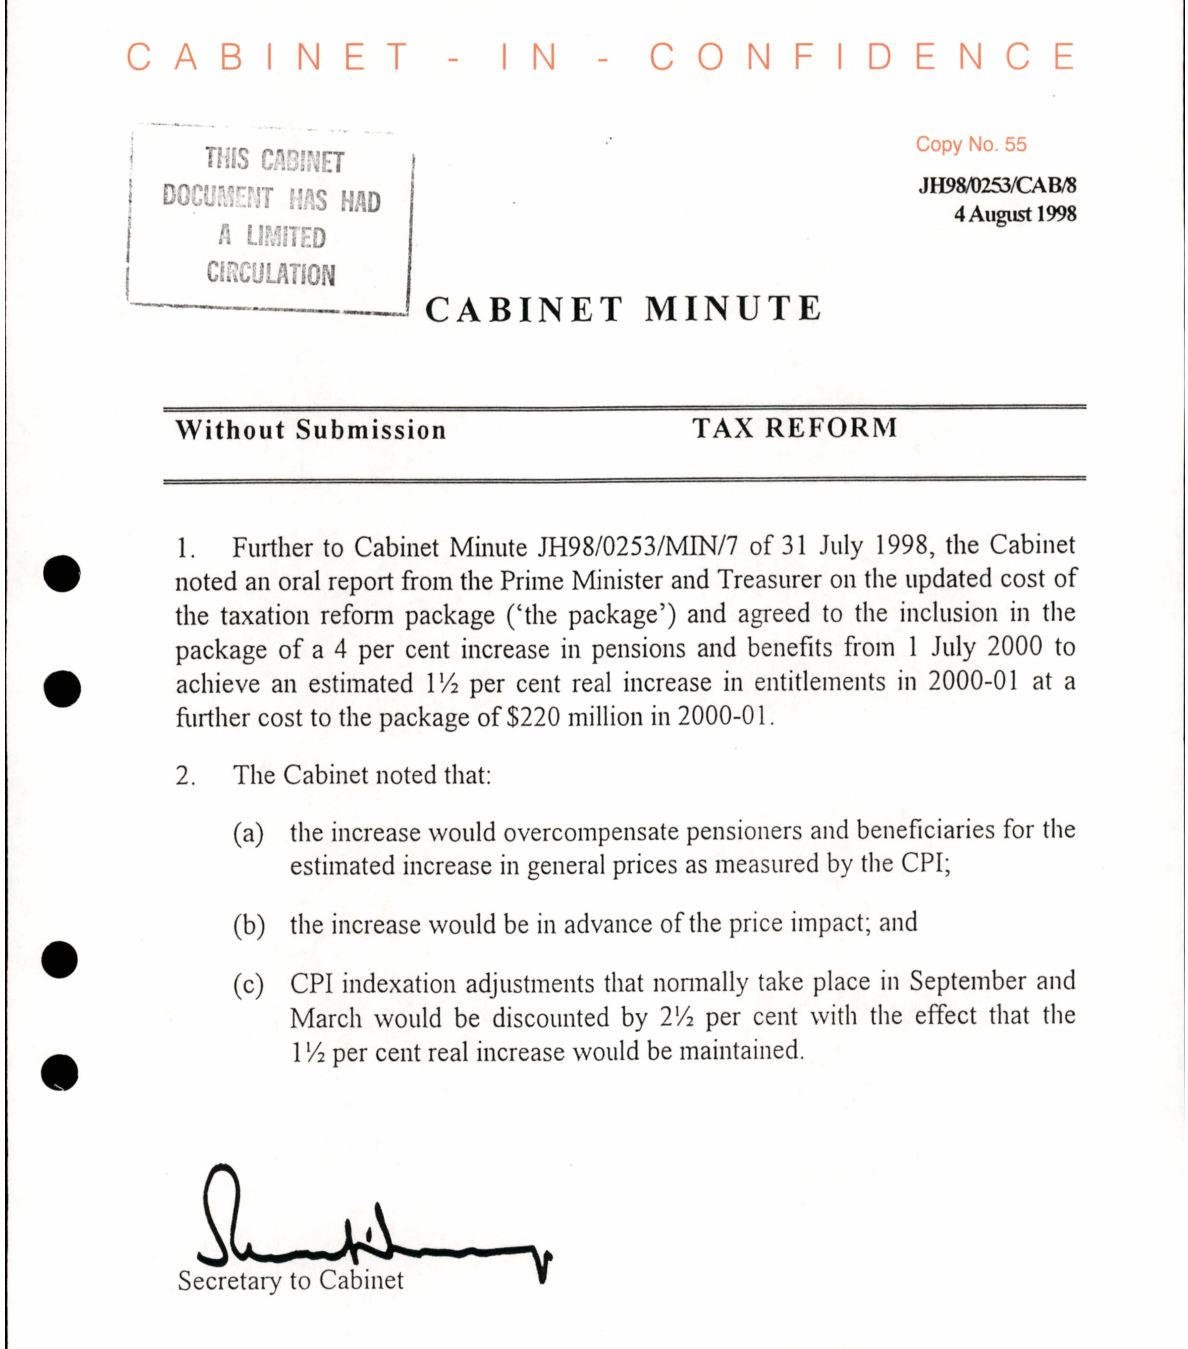 Cabinet papers 1998-99: How the GST became unstoppable_2